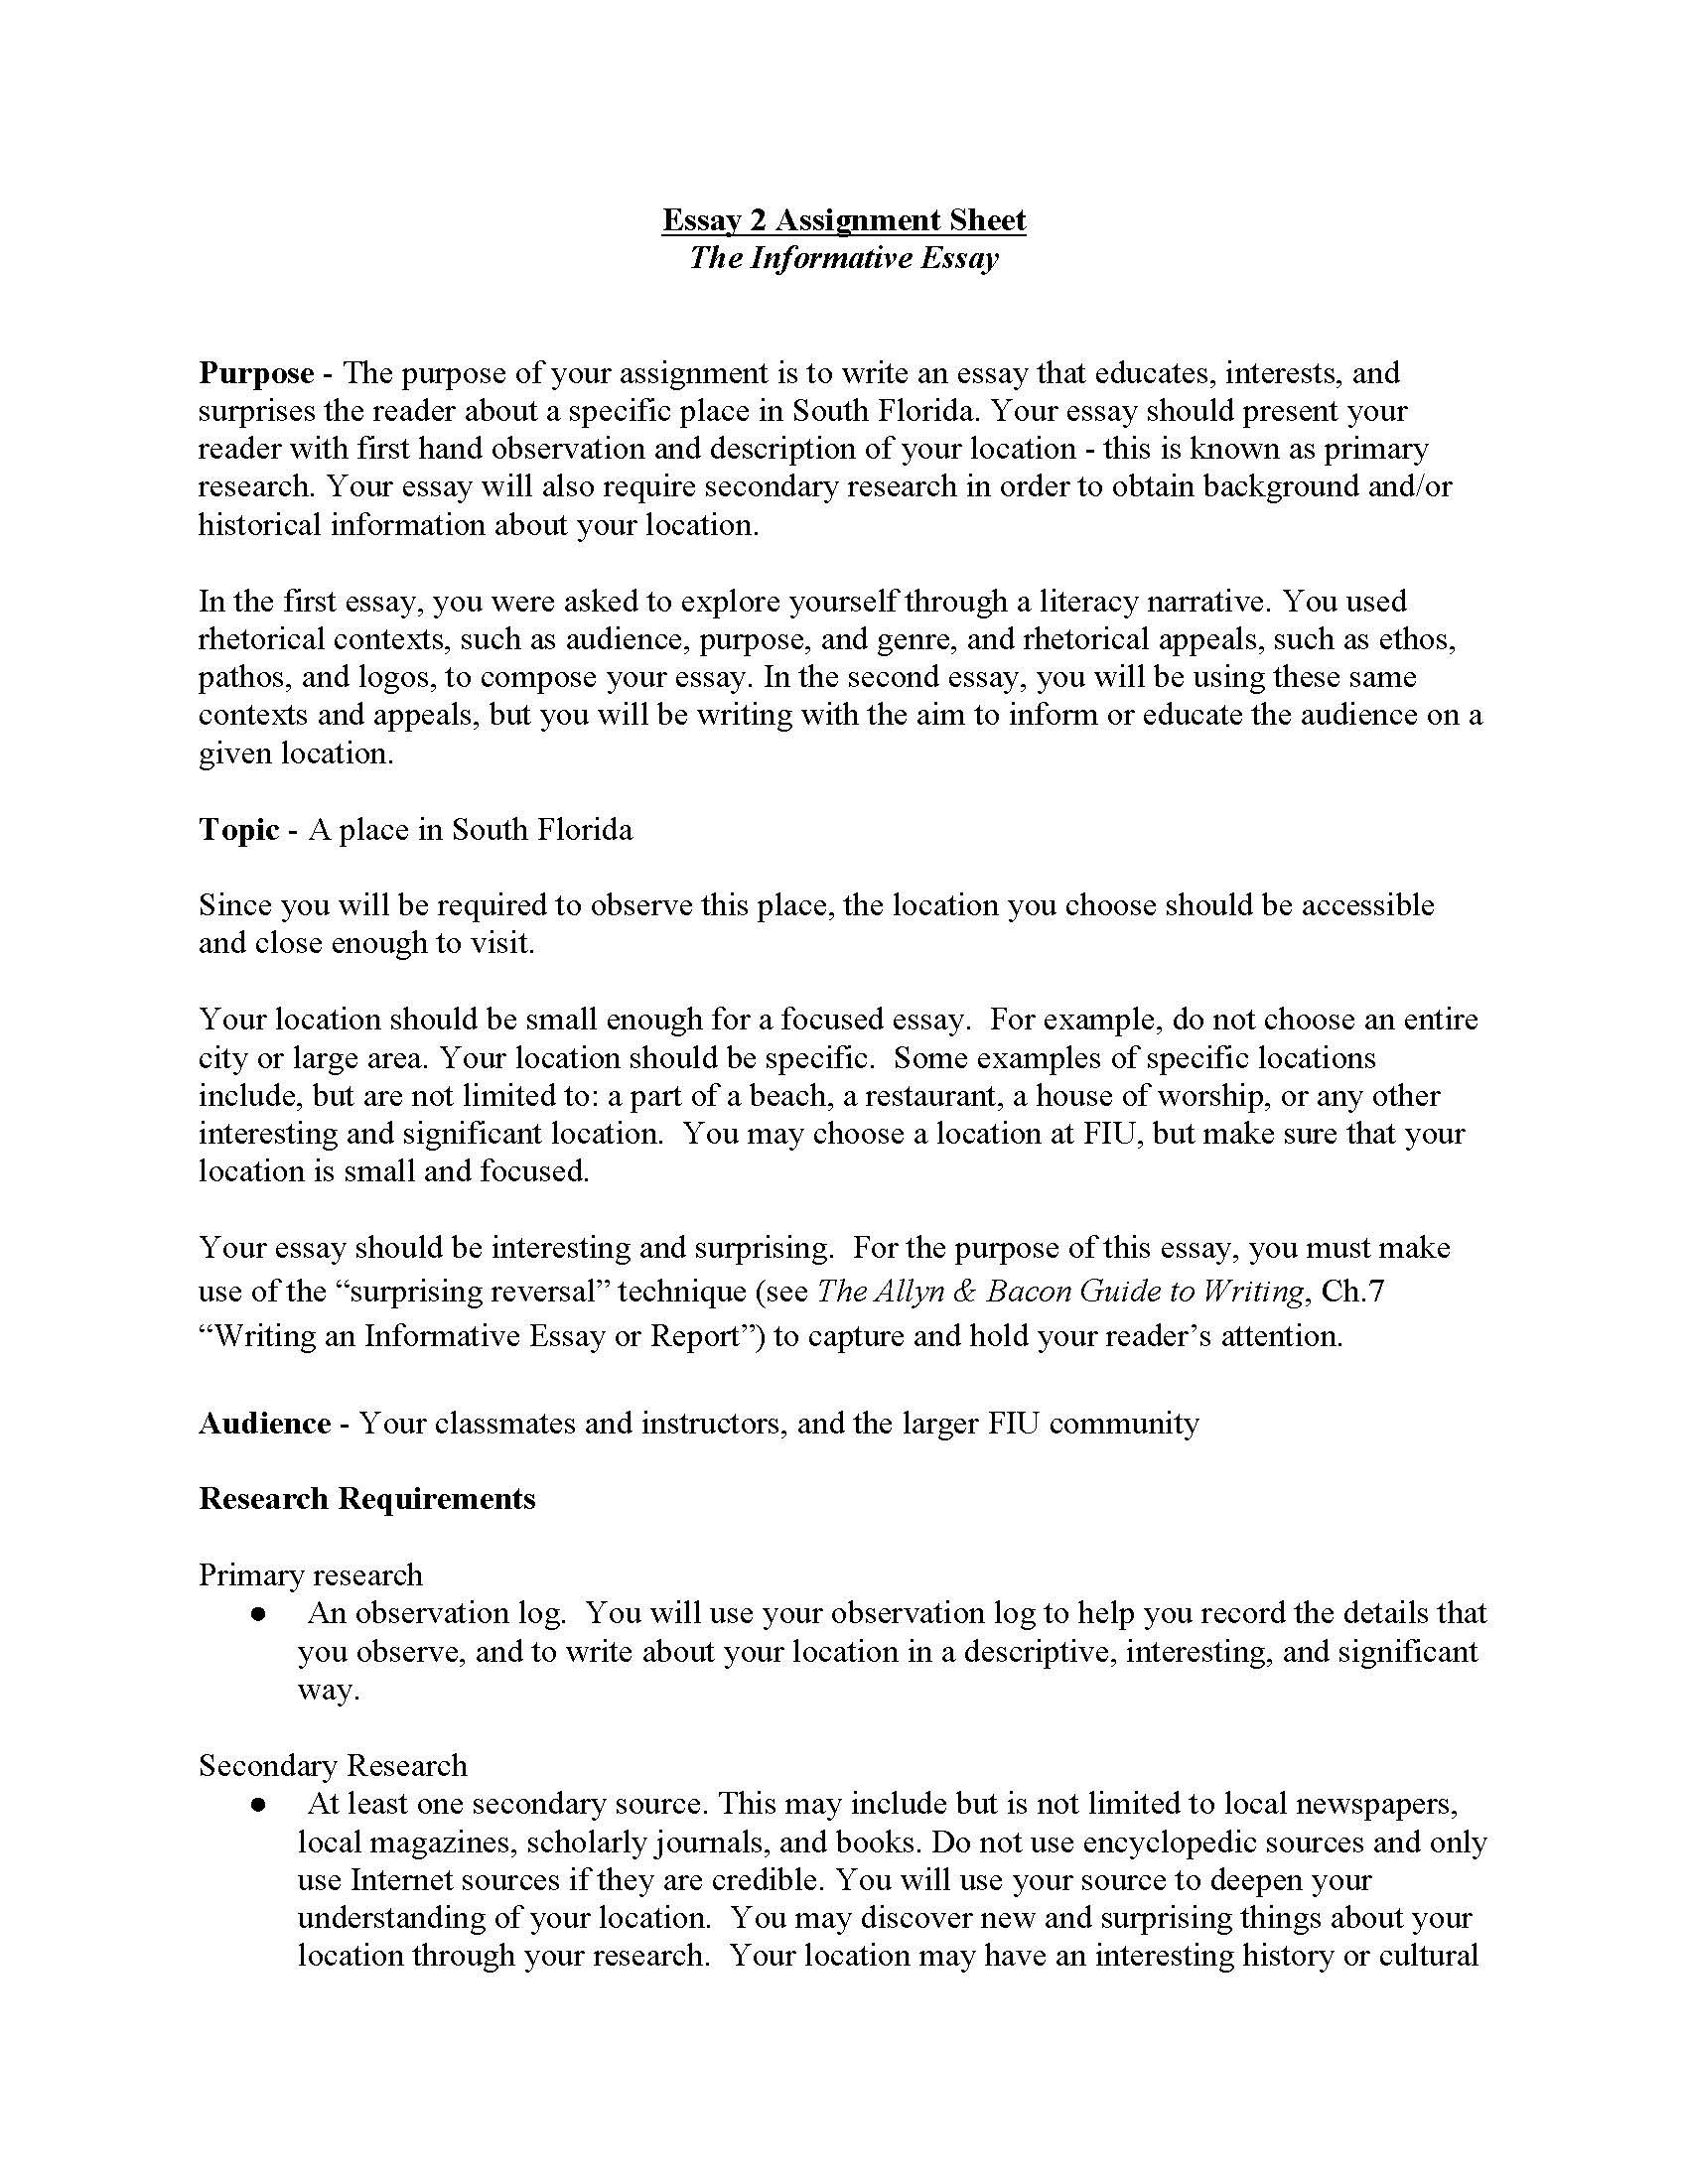 informative essay informative essay writing help how to write help writing informative essay custom essay eupersuasive writing also known as the argument essay utilizes logic